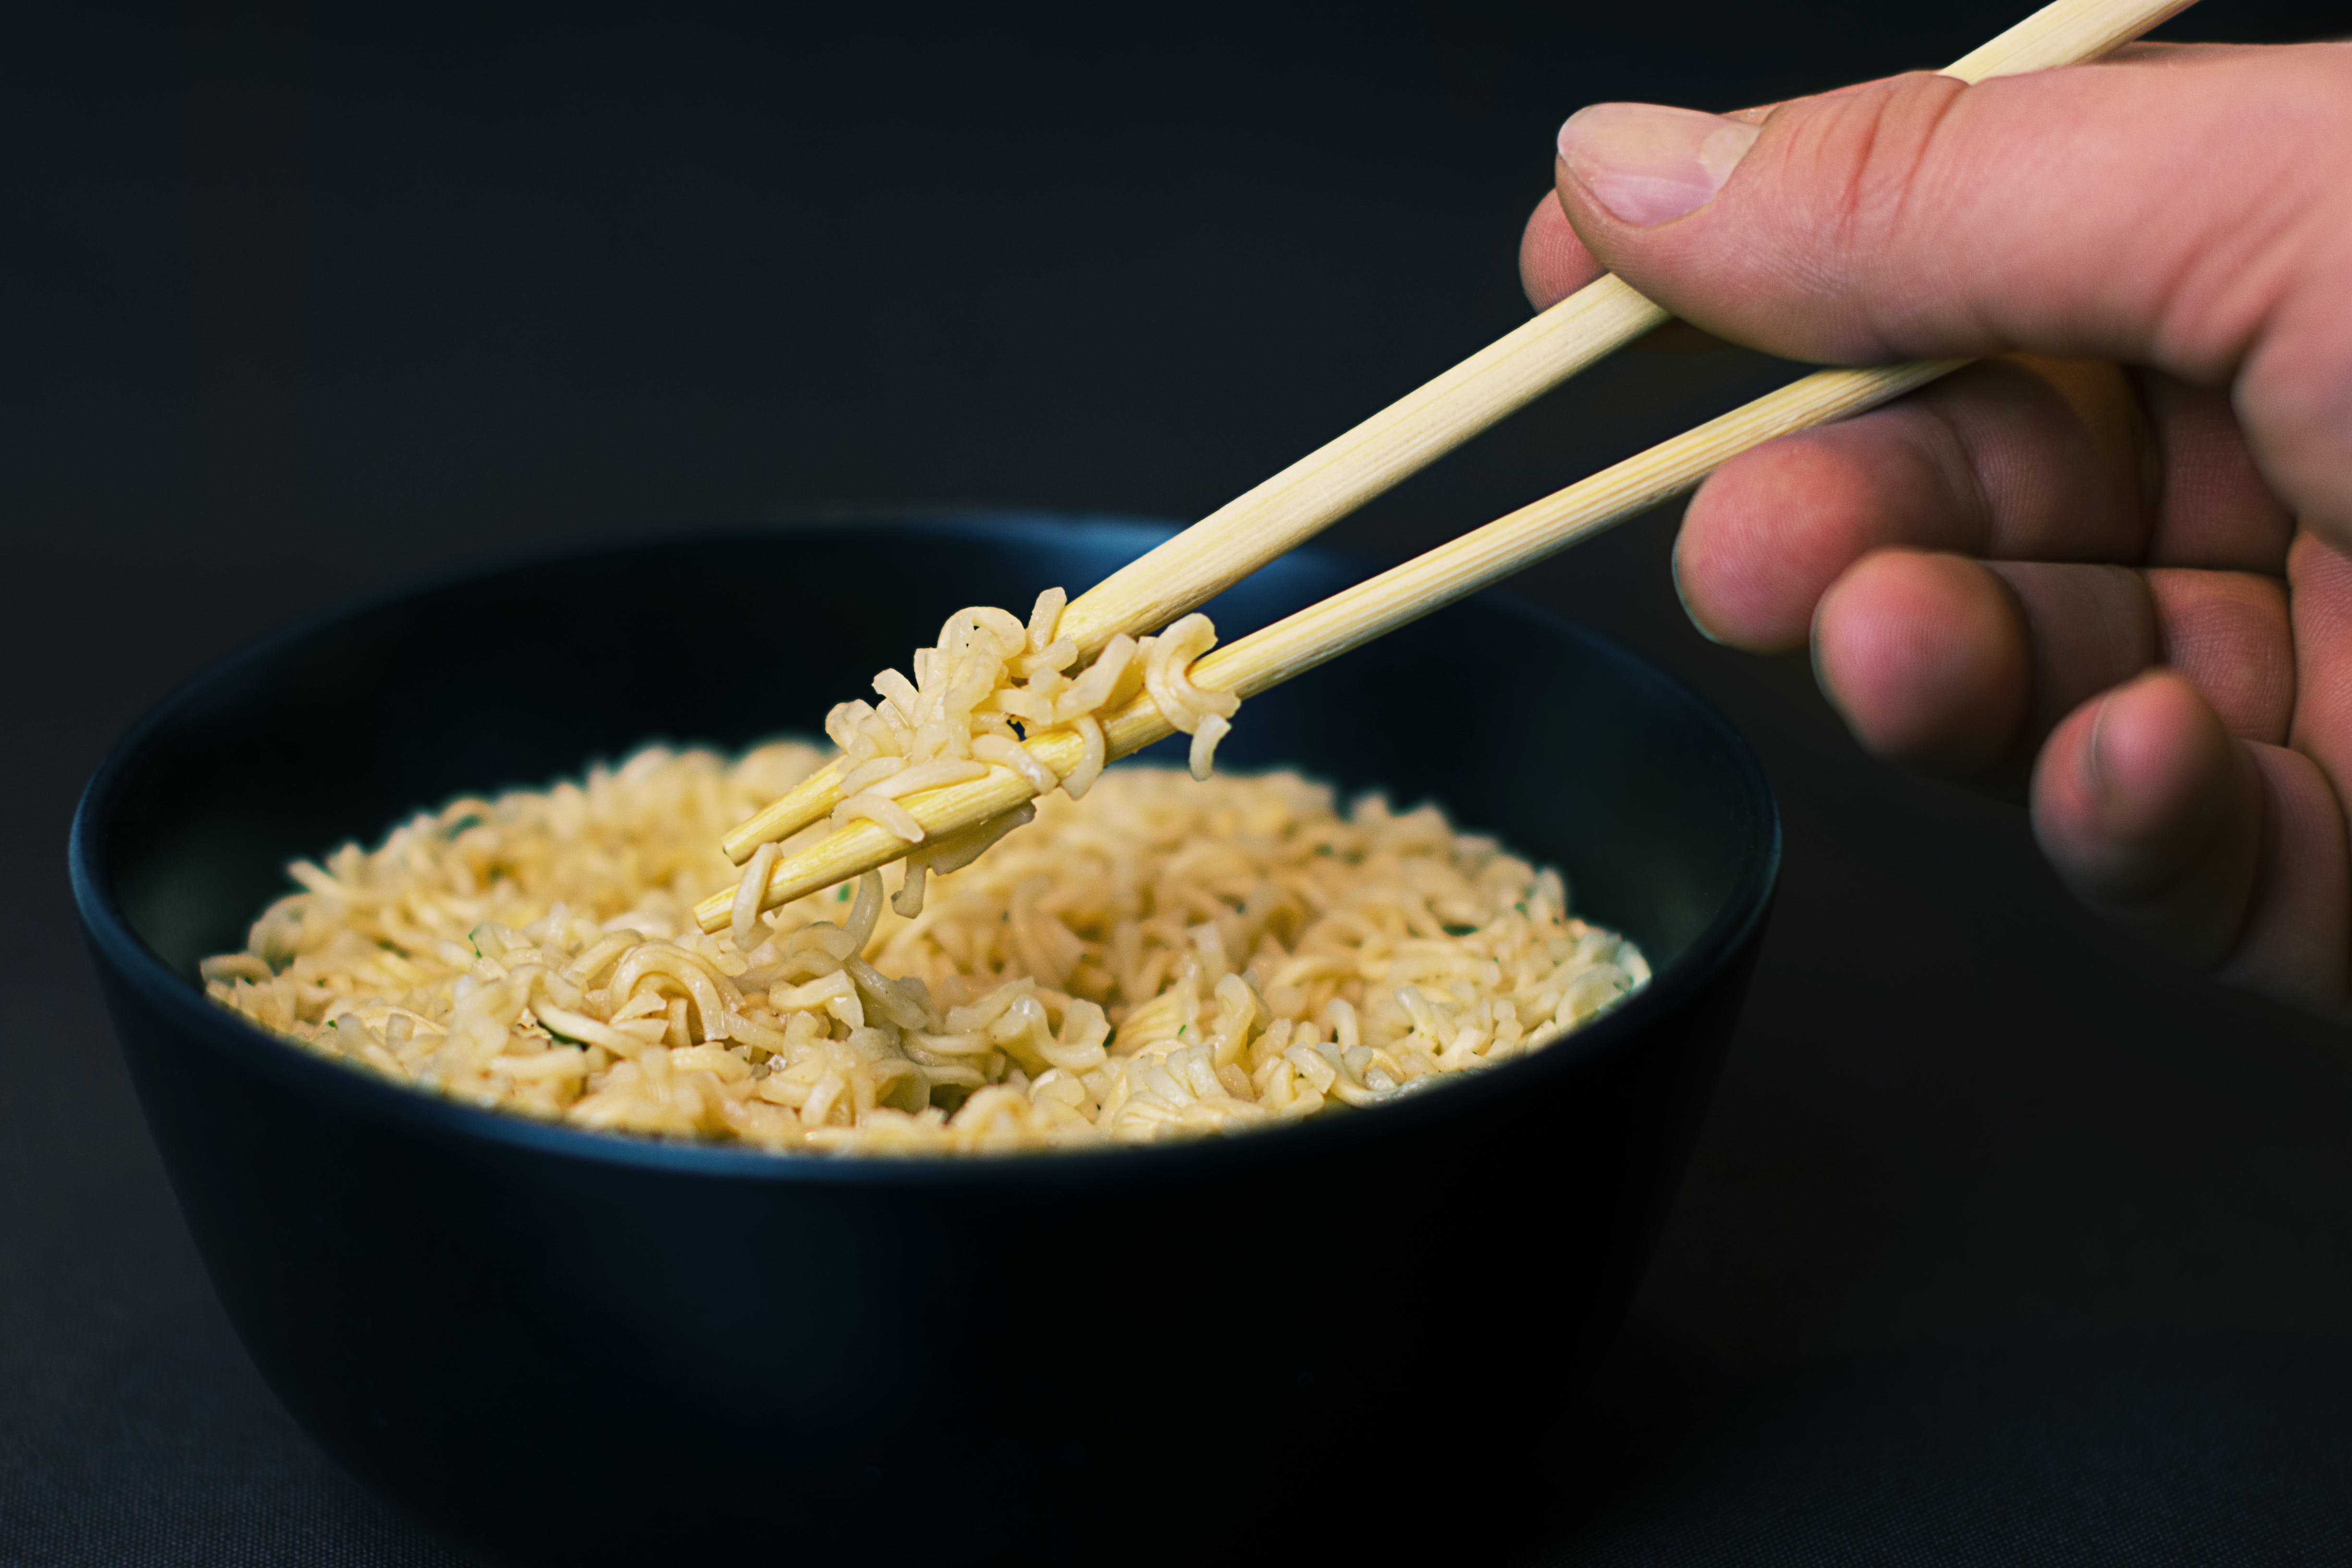 Person Holding a Chopsticks and Picking a Noodles in Black Bowl